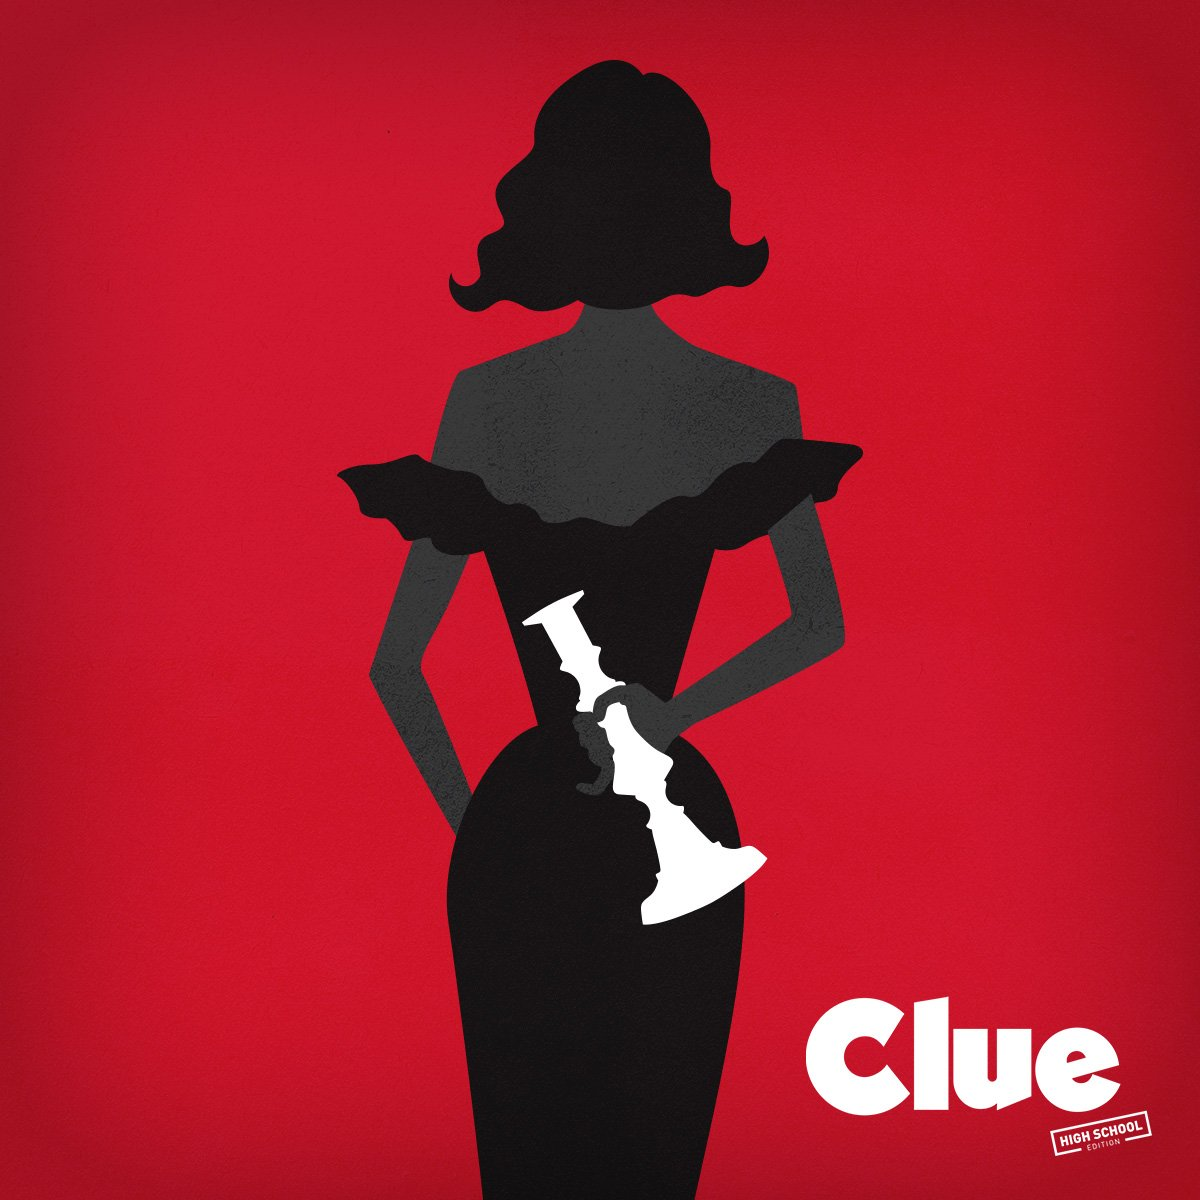 Auditions Sept 8 & 9. Gotta love a murder-mystery comedy thriller based on a 1985 cult film. Whodunit? CLUE on stage. <a target='_blank' href='http://twitter.com/wakefieldptsa'>@wakefieldptsa</a> <a target='_blank' href='http://twitter.com/WakeCounselors'>@WakeCounselors</a> <a target='_blank' href='http://twitter.com/WHSHappenings'>@WHSHappenings</a> <a target='_blank' href='http://twitter.com/principalWHS'>@principalWHS</a> <a target='_blank' href='http://twitter.com/wakefieldturtle'>@wakefieldturtle</a> <a target='_blank' href='http://twitter.com/devinshirley'>@devinshirley</a> <a target='_blank' href='https://t.co/9uIu9whspl'>https://t.co/9uIu9whspl</a>